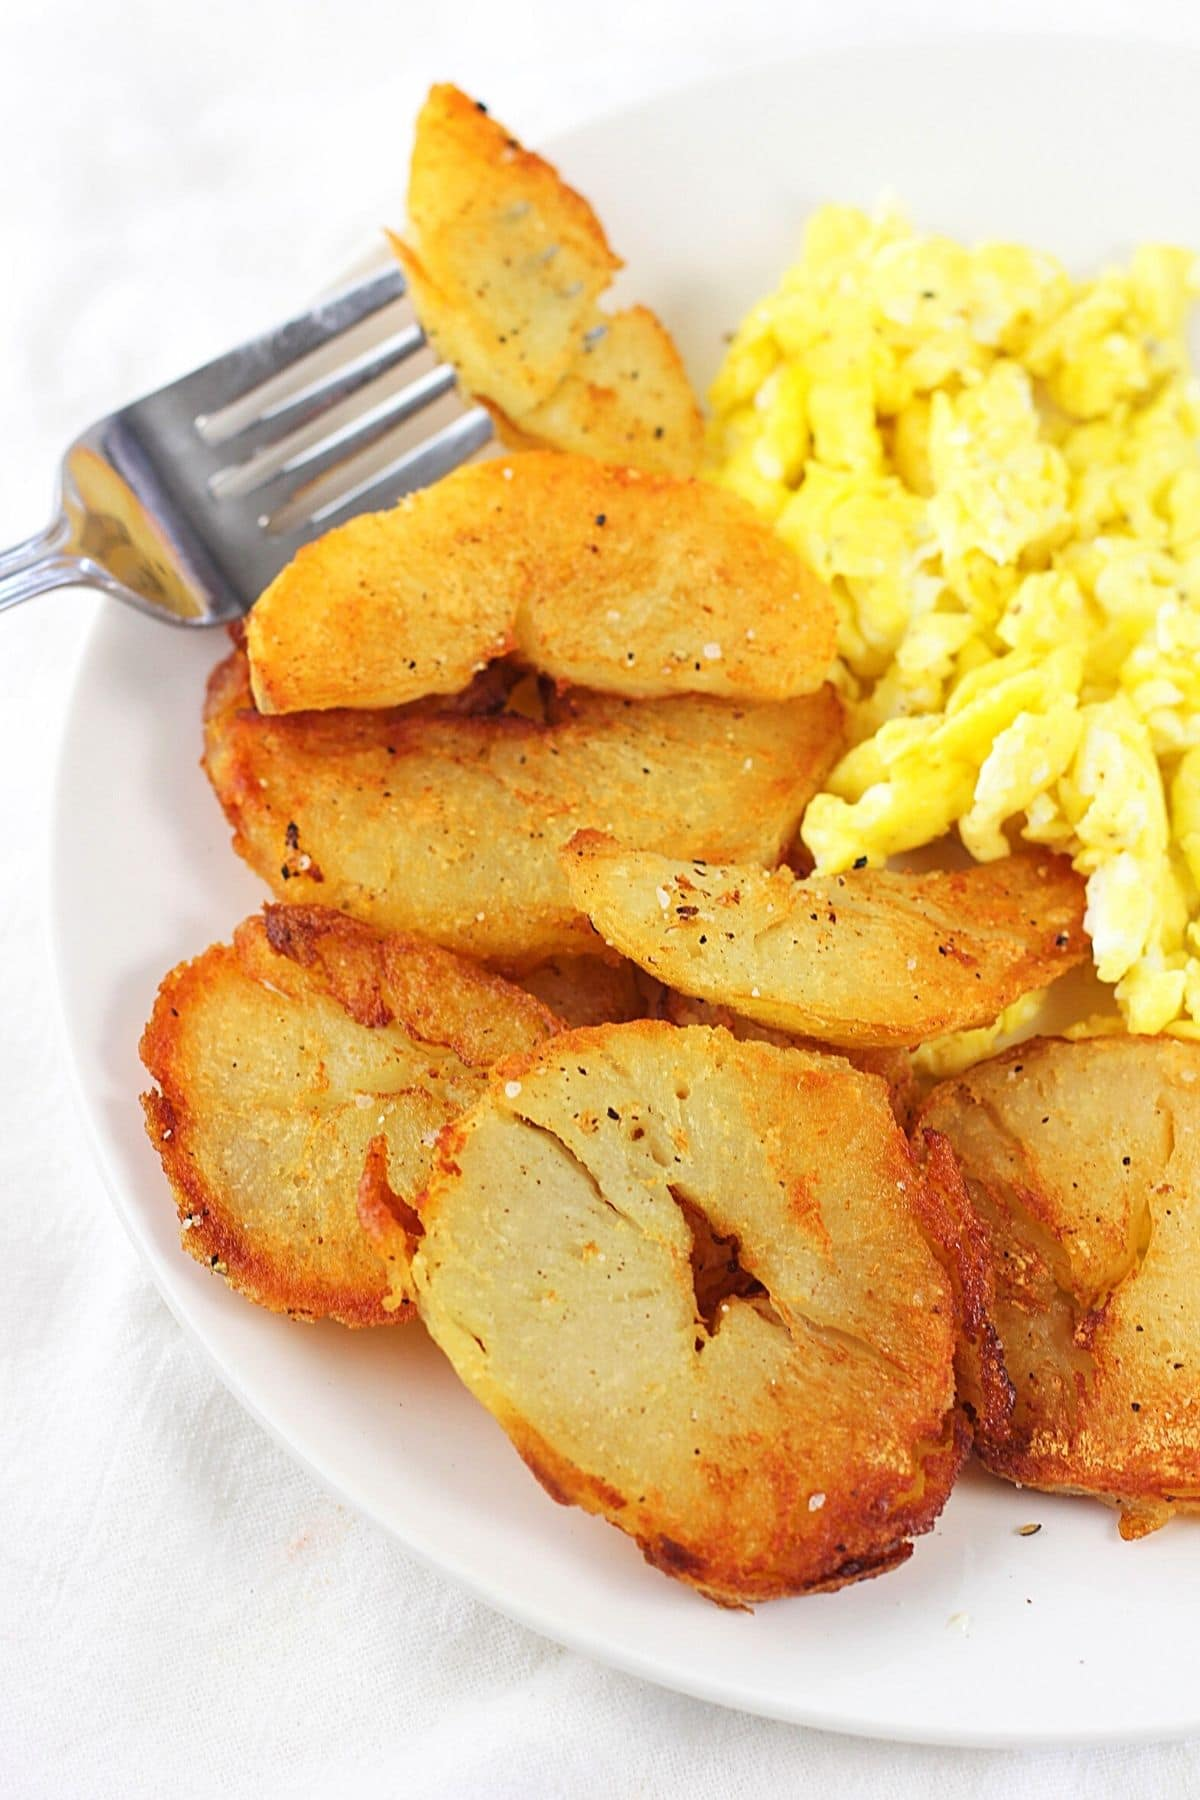 leftover baked potato home fries on a white plate with scrambled eggs with one piece of potato on a fork